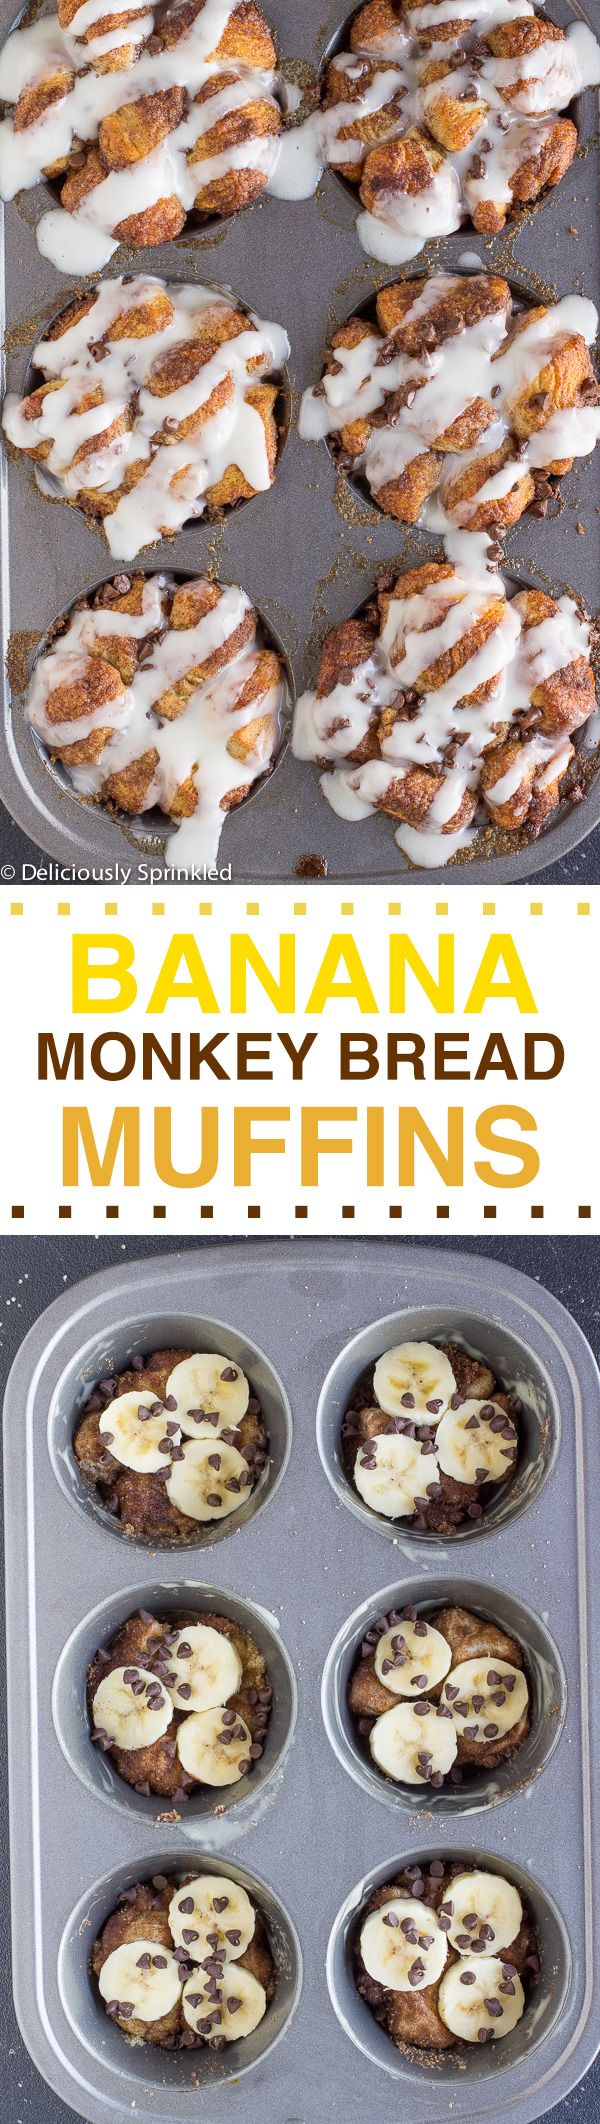 The BEST Banana Monkey Bread Muffins: